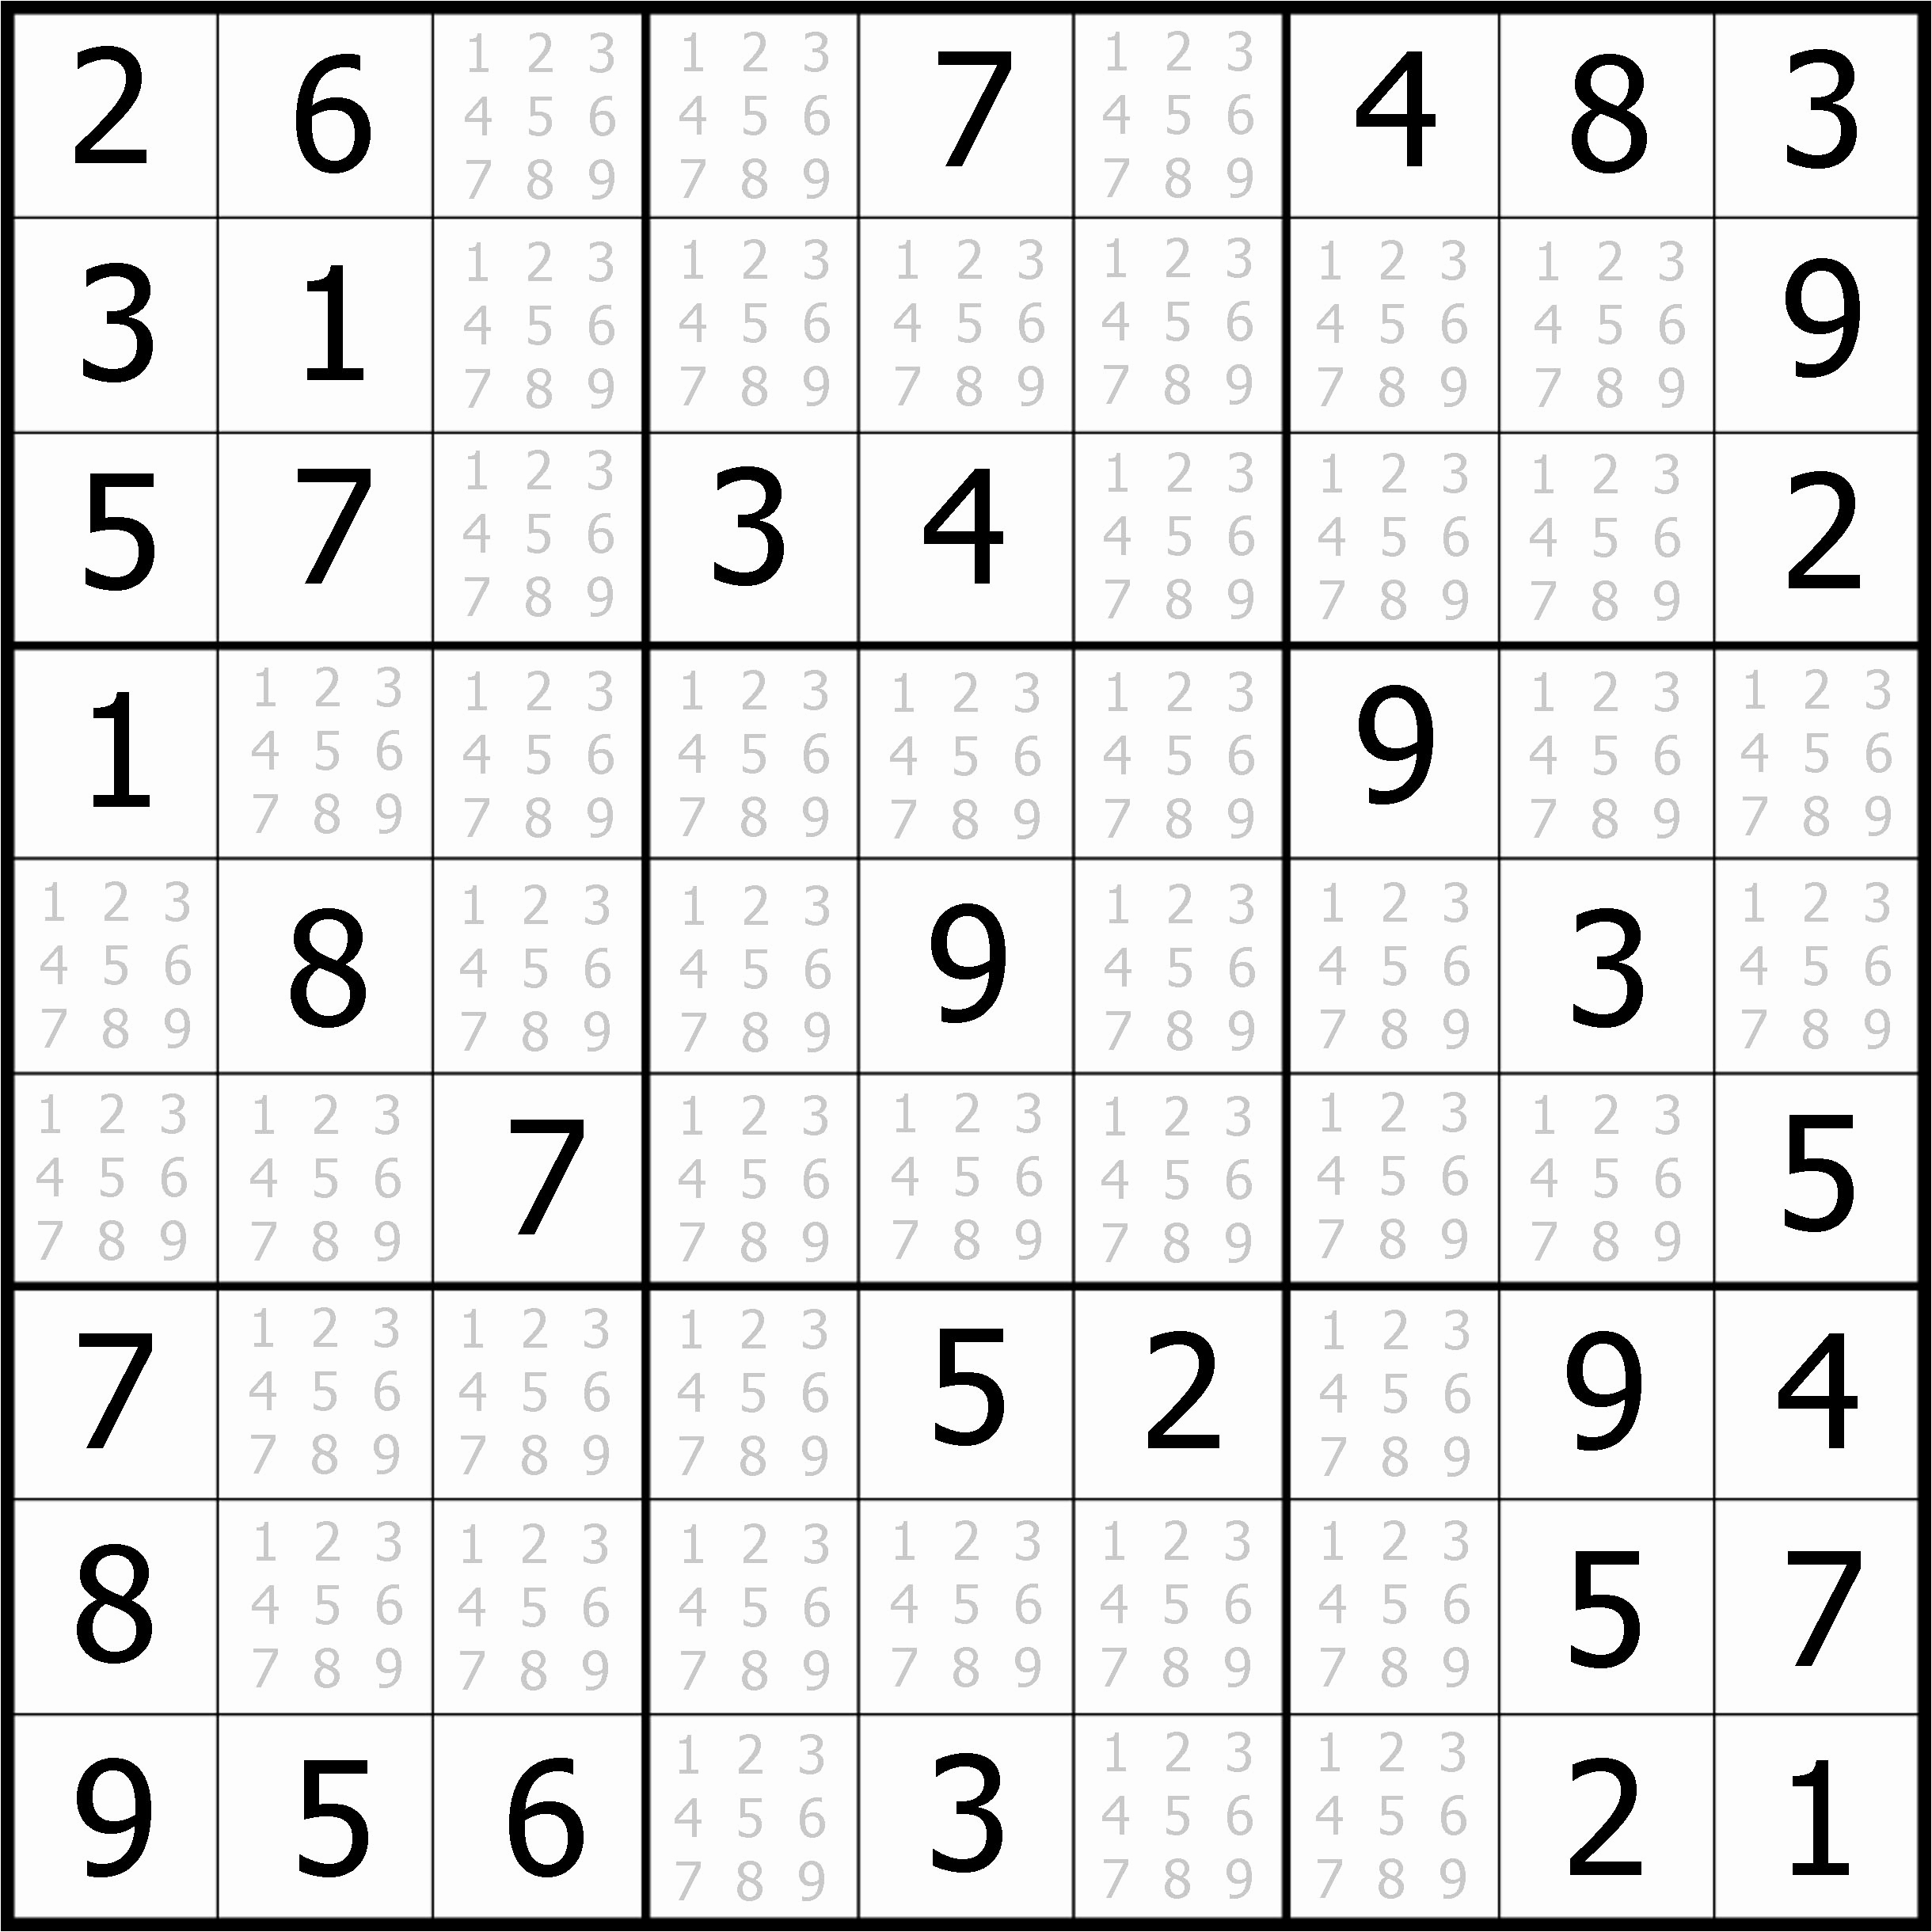 Easy Sudoku Puzzles To Print Free Download Featured Sudoku Puzzle To - Printable Sudoku Puzzles Easy